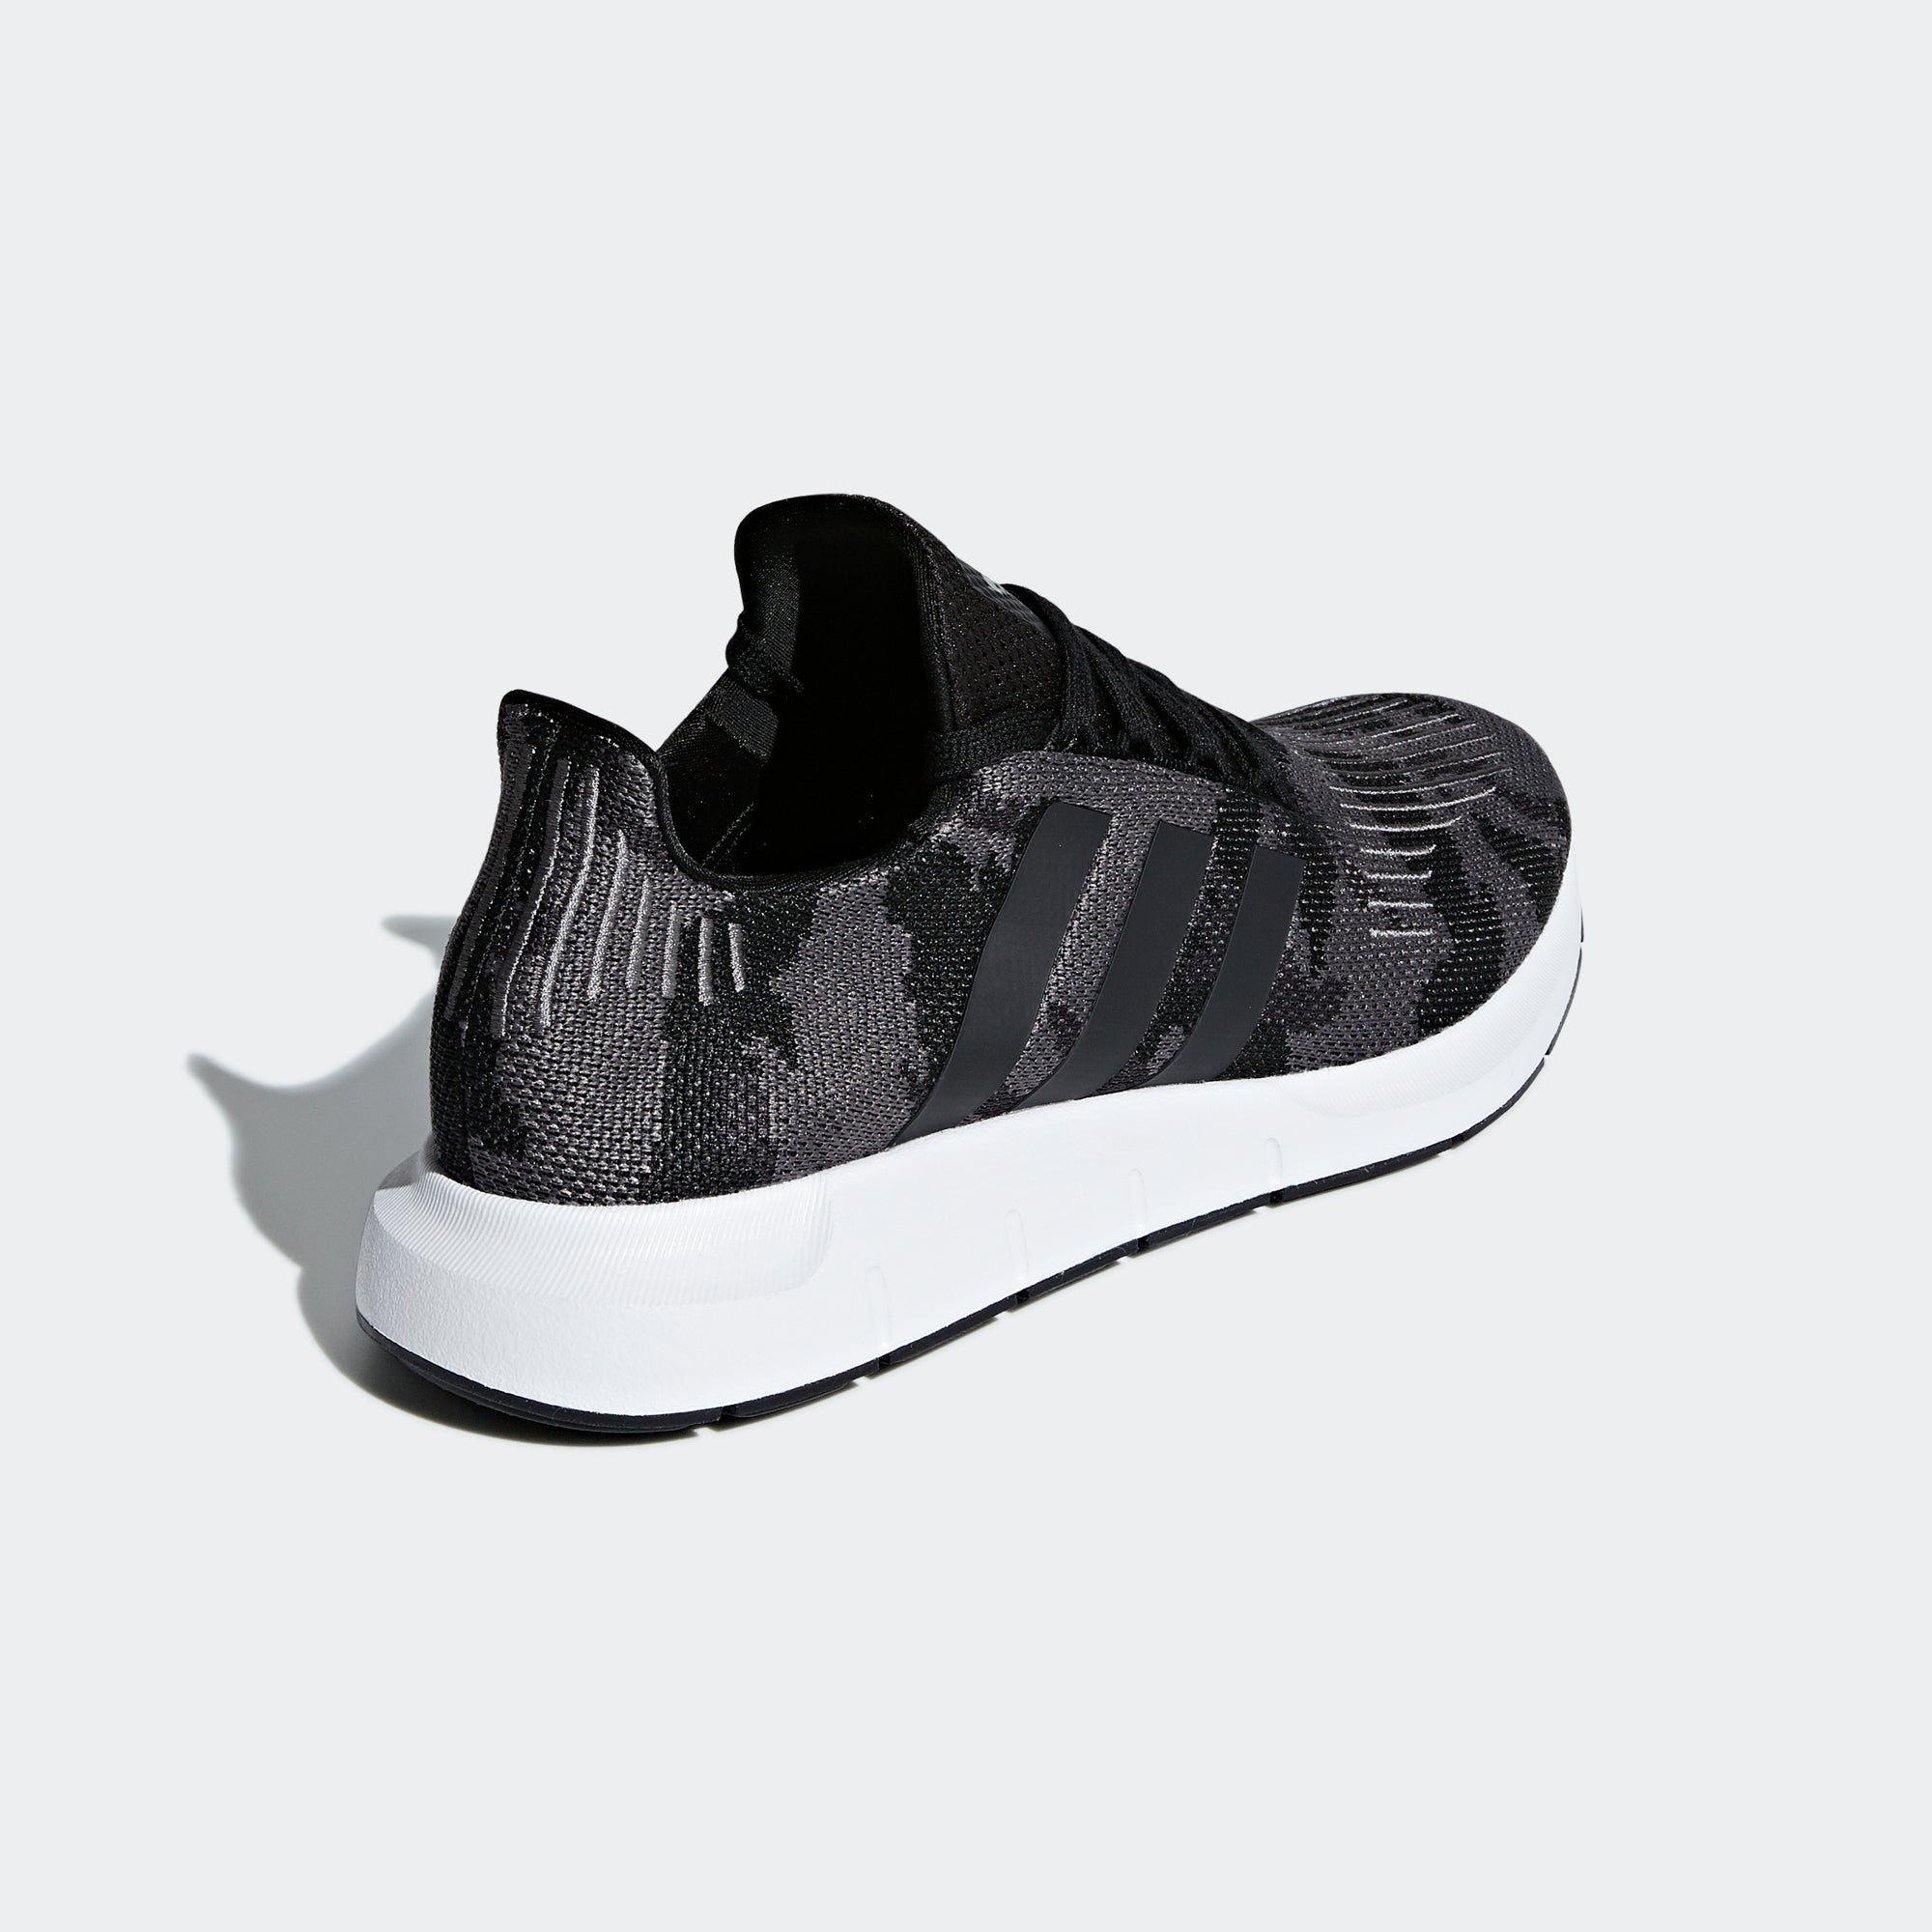 Tormenta Sensación Color de malva  adidas Swift Run Shoes Black Camo BD7977 | Chicago City Sports